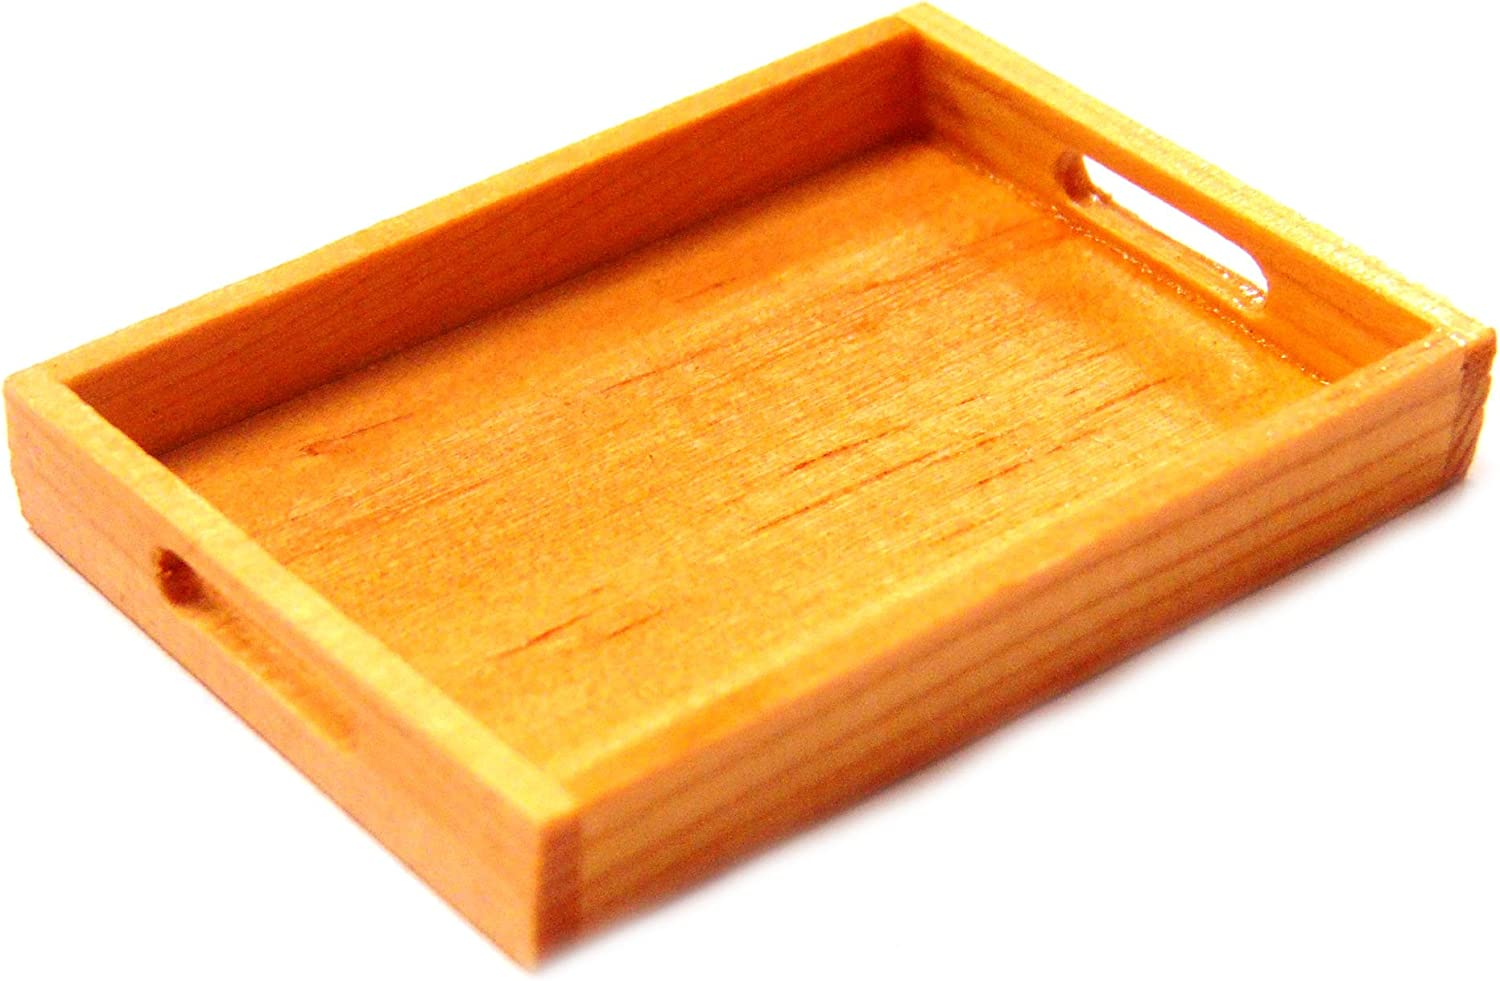 Tumdee Miniatures Wooden Serving Tray Dolls House Accessories BK2